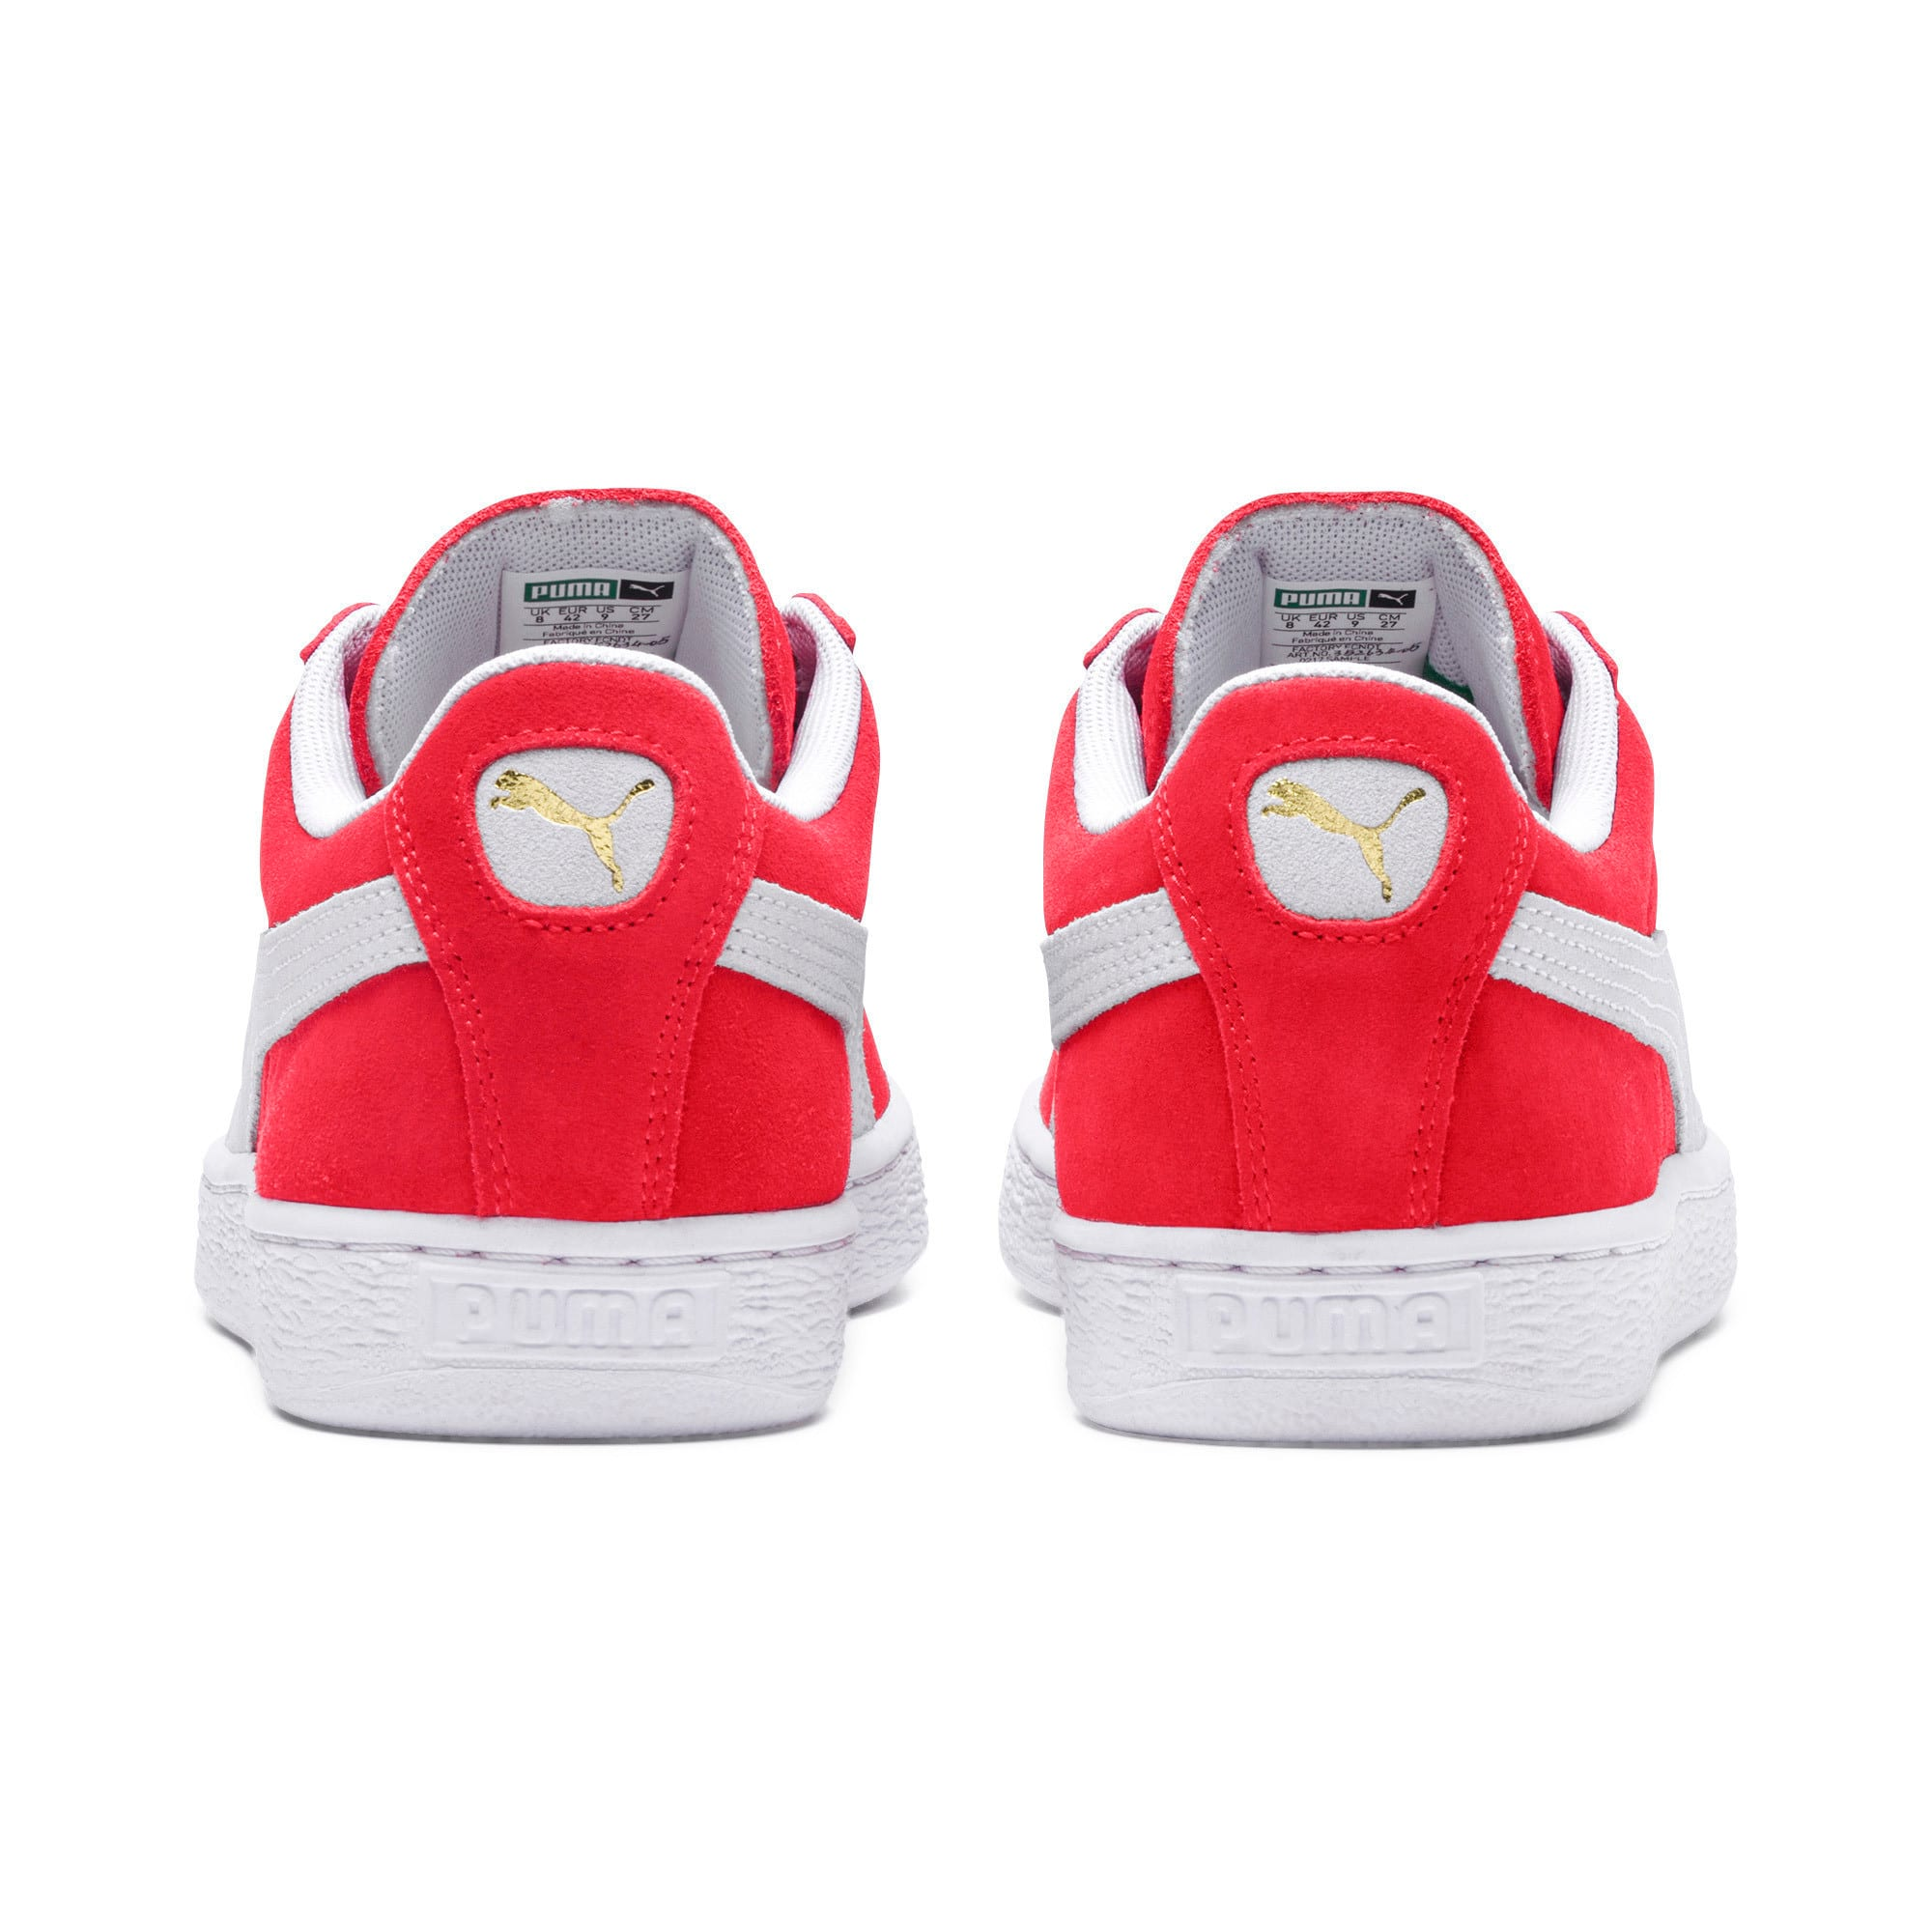 Thumbnail 3 of Suede Classic+ Sneakers, team regal red-white, medium